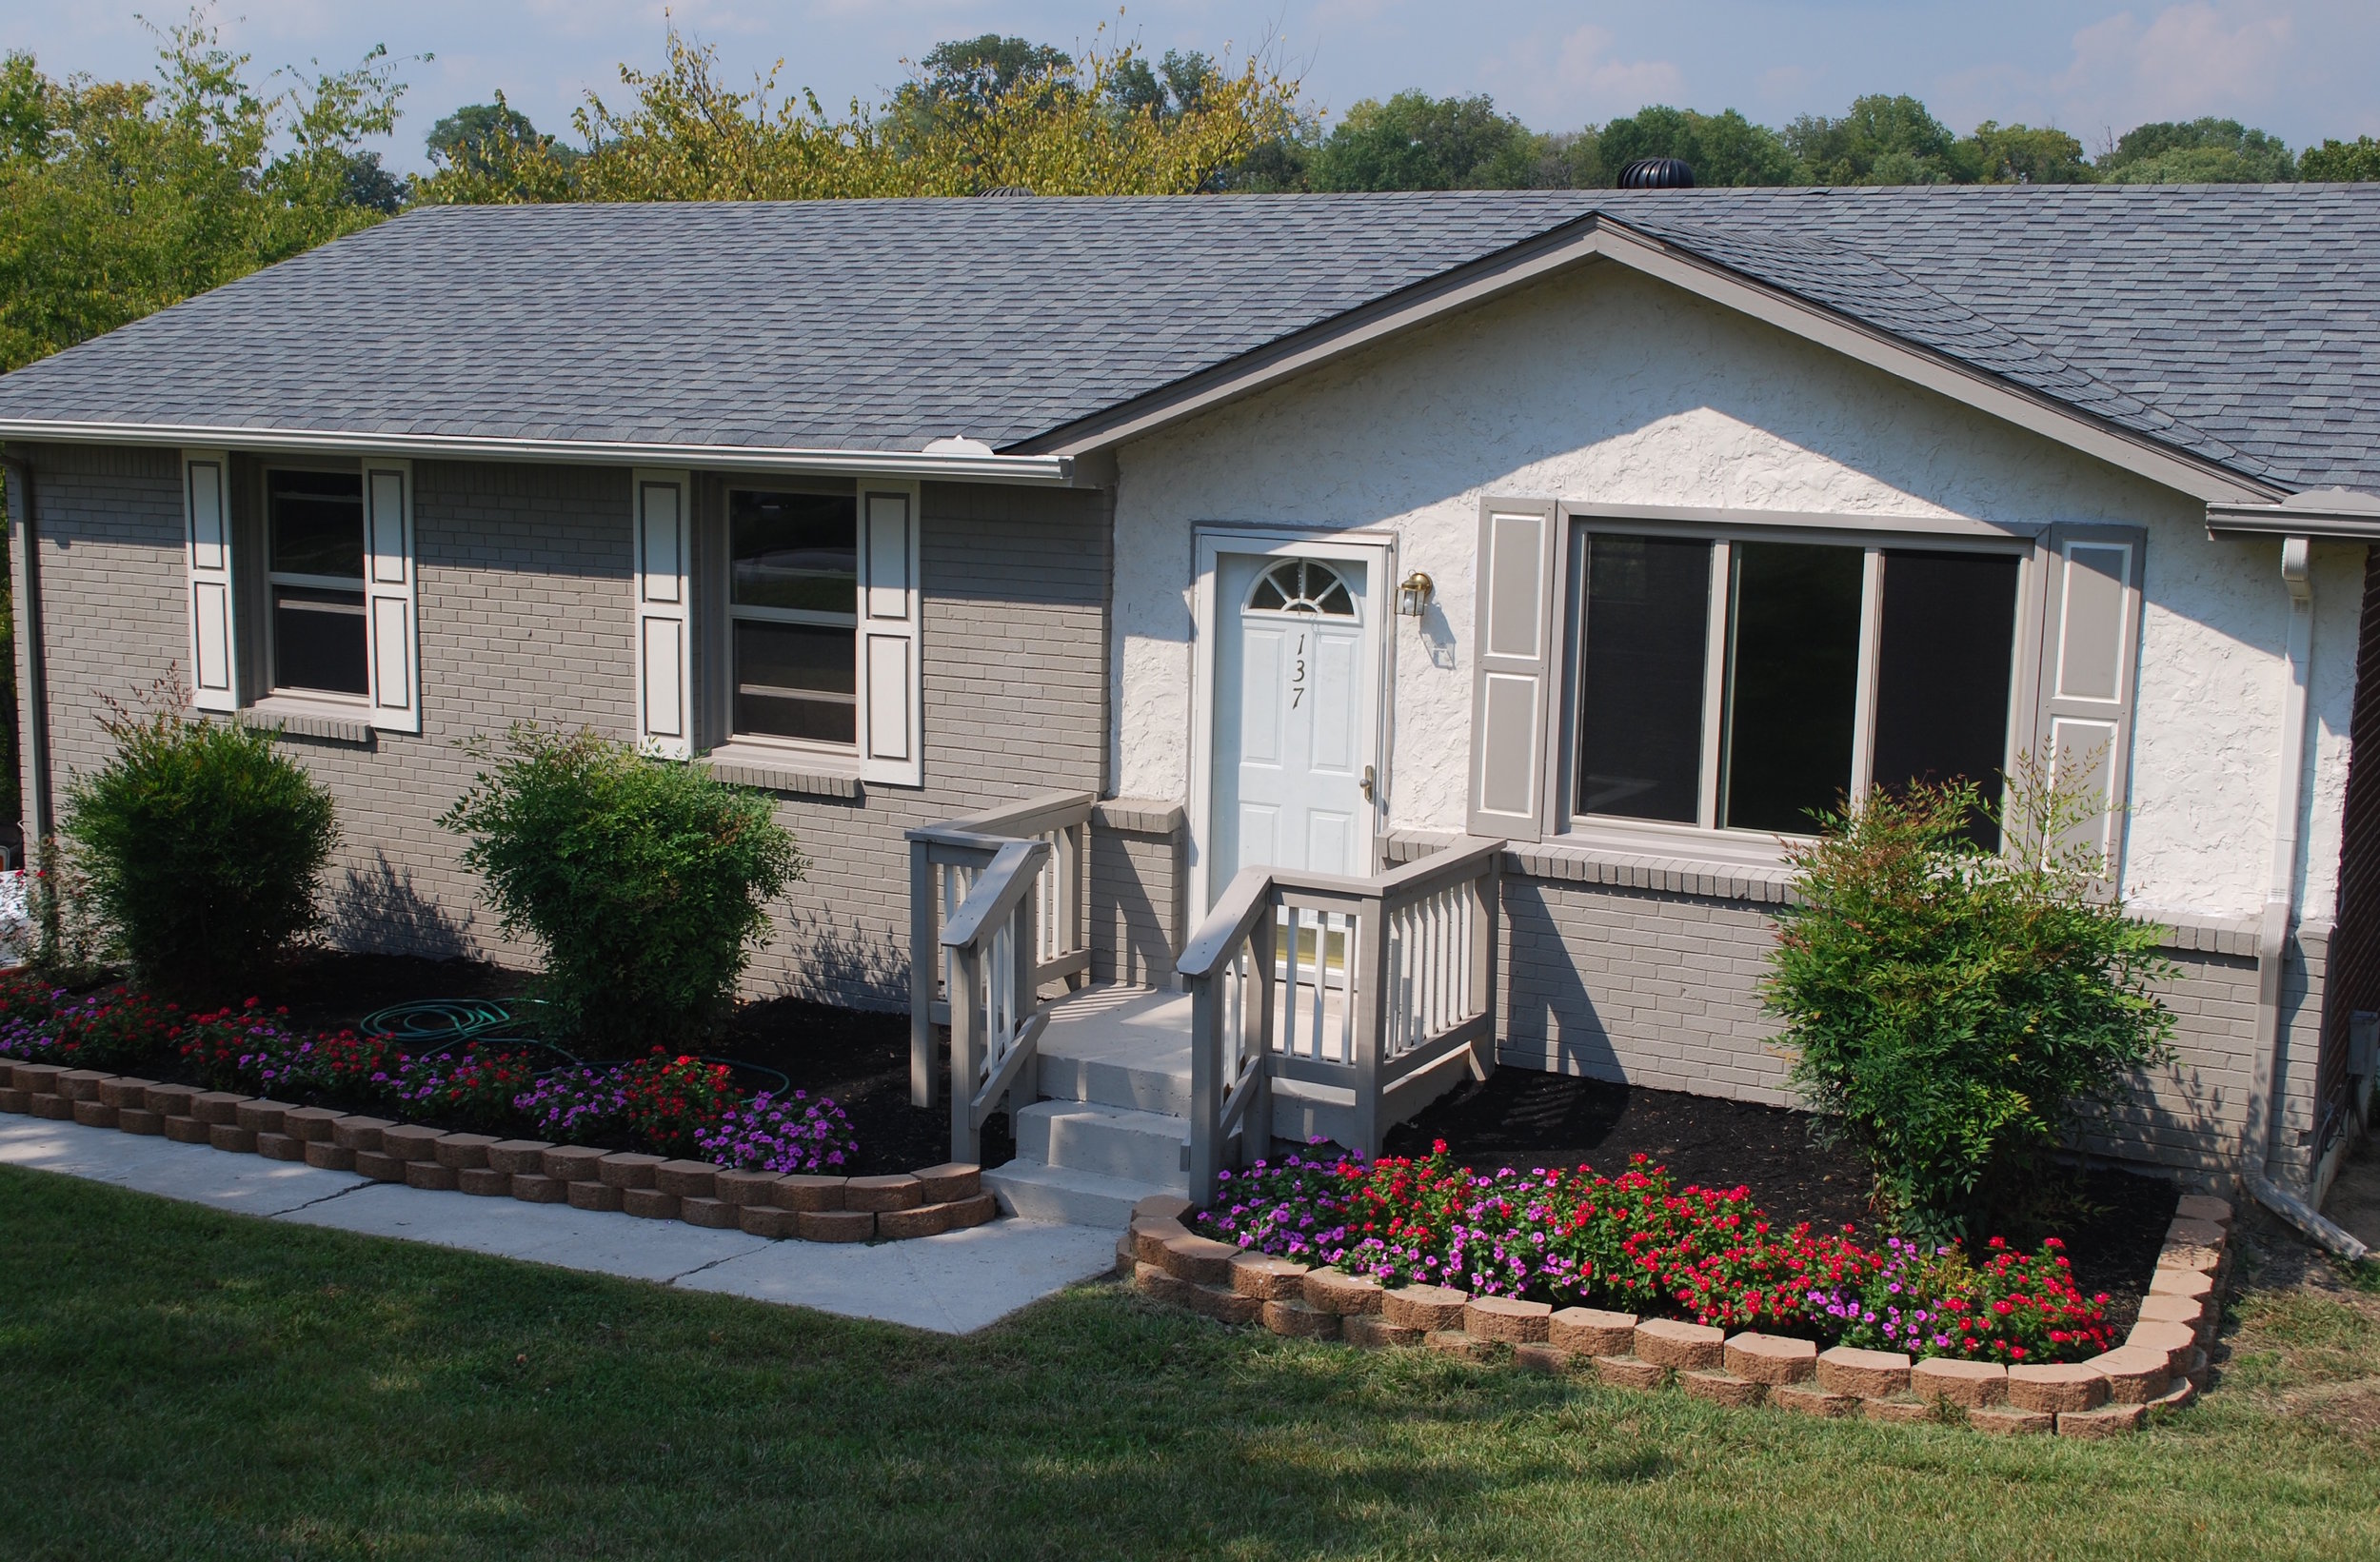 137 AVAILABLE July 15 HENDERSONVILLE: 137 Two Valley  Single Family Home: 3Br 1Ba